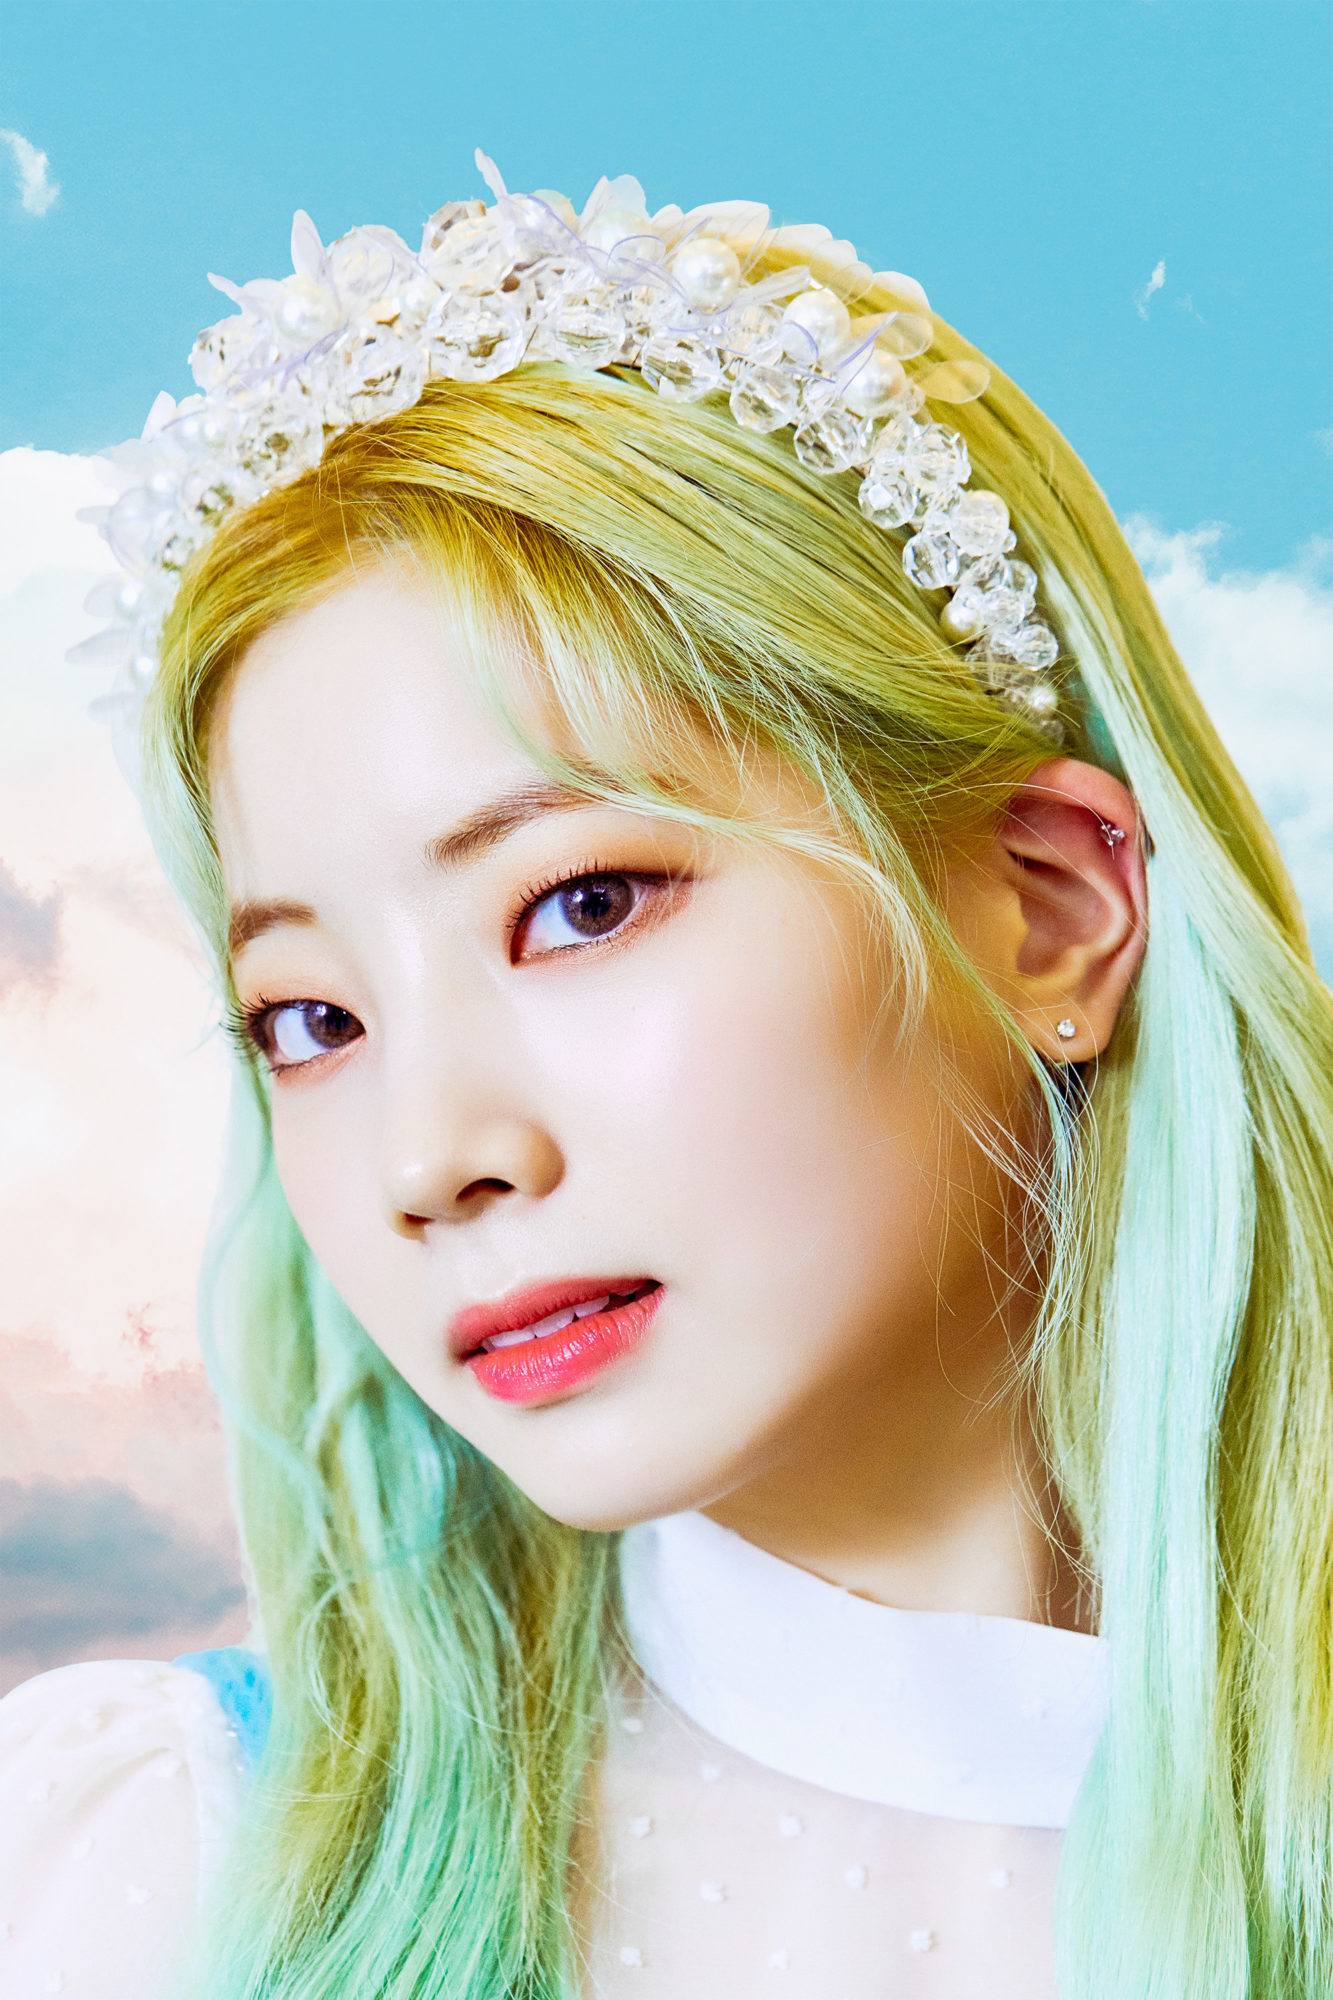 Dahyun Fancy HD